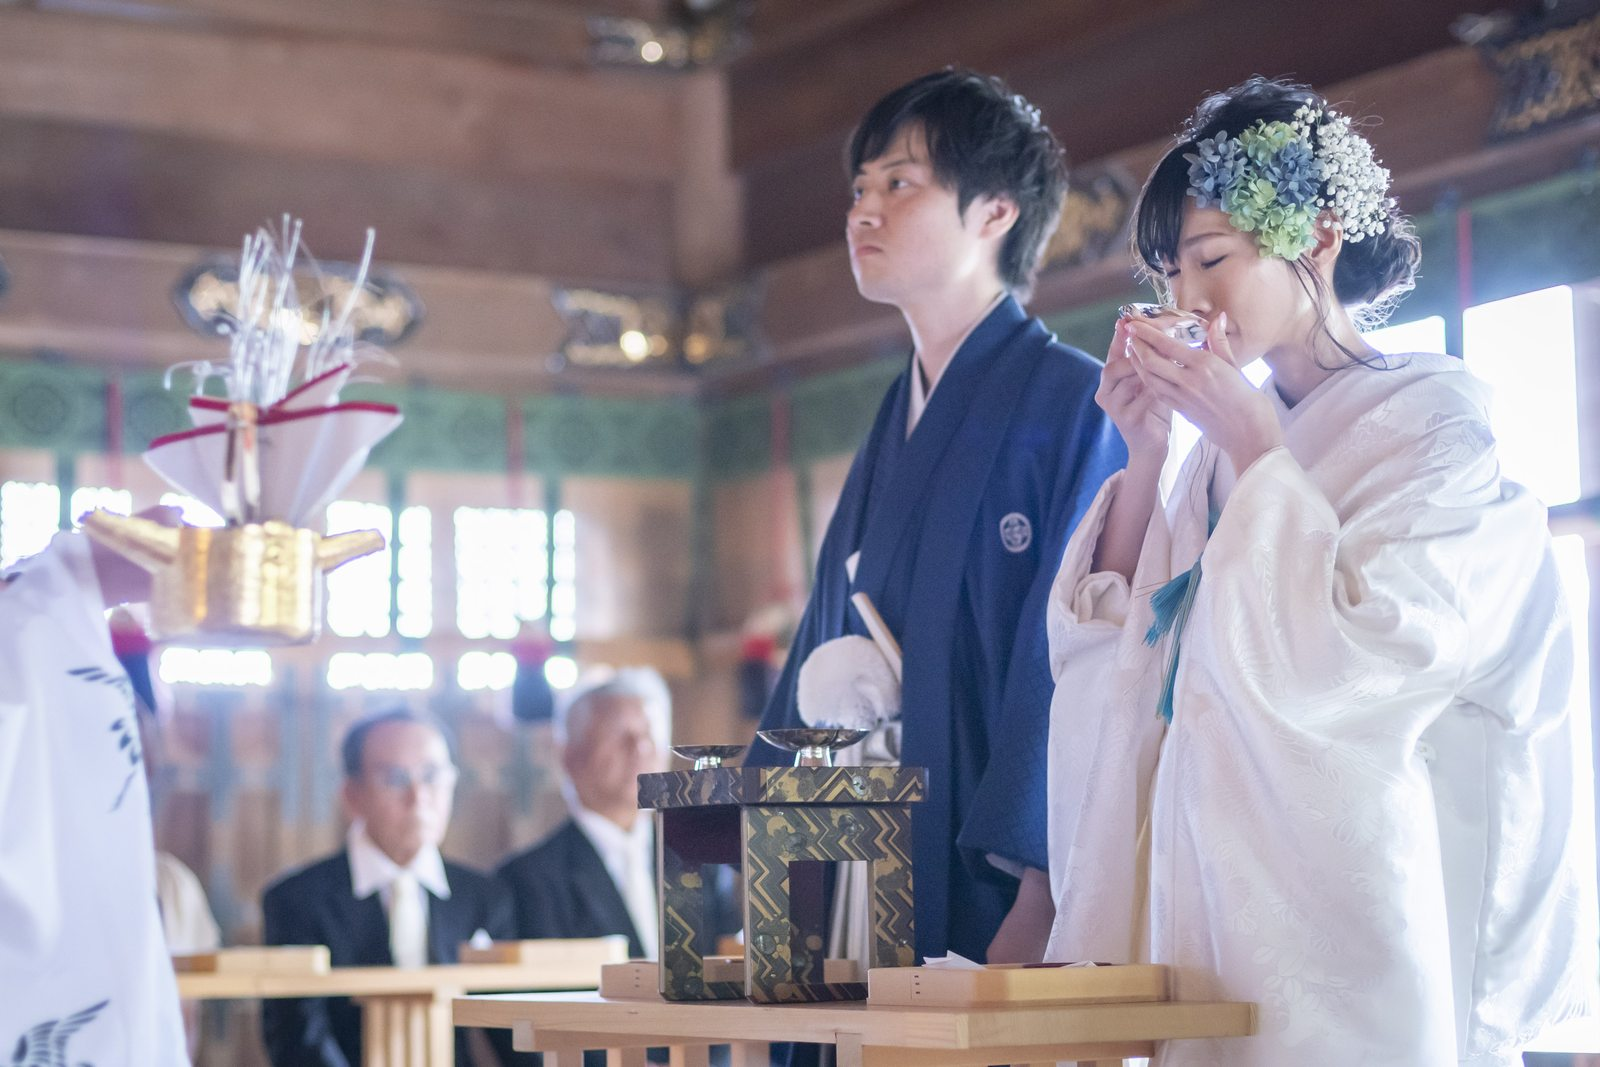 高松市の結婚式場アイルバレクラブ 神前式